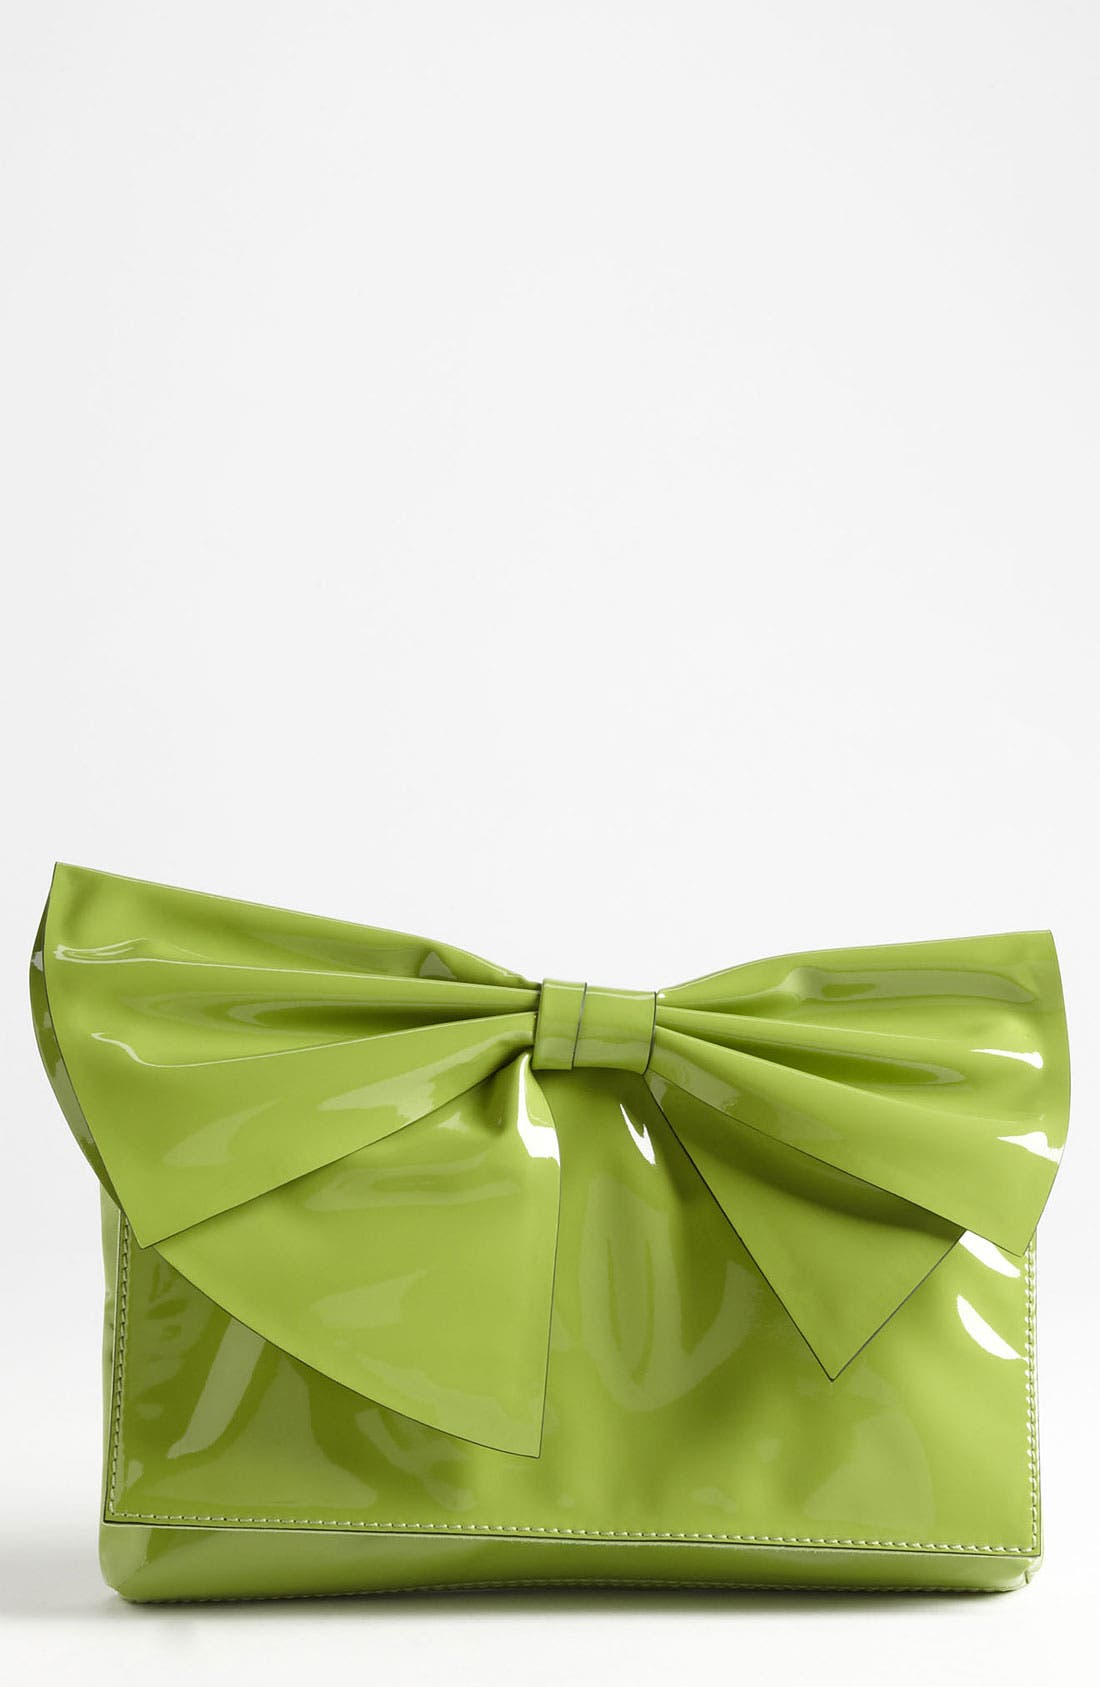 Main Image - Valentino 'Lacca Bow' Flap Clutch